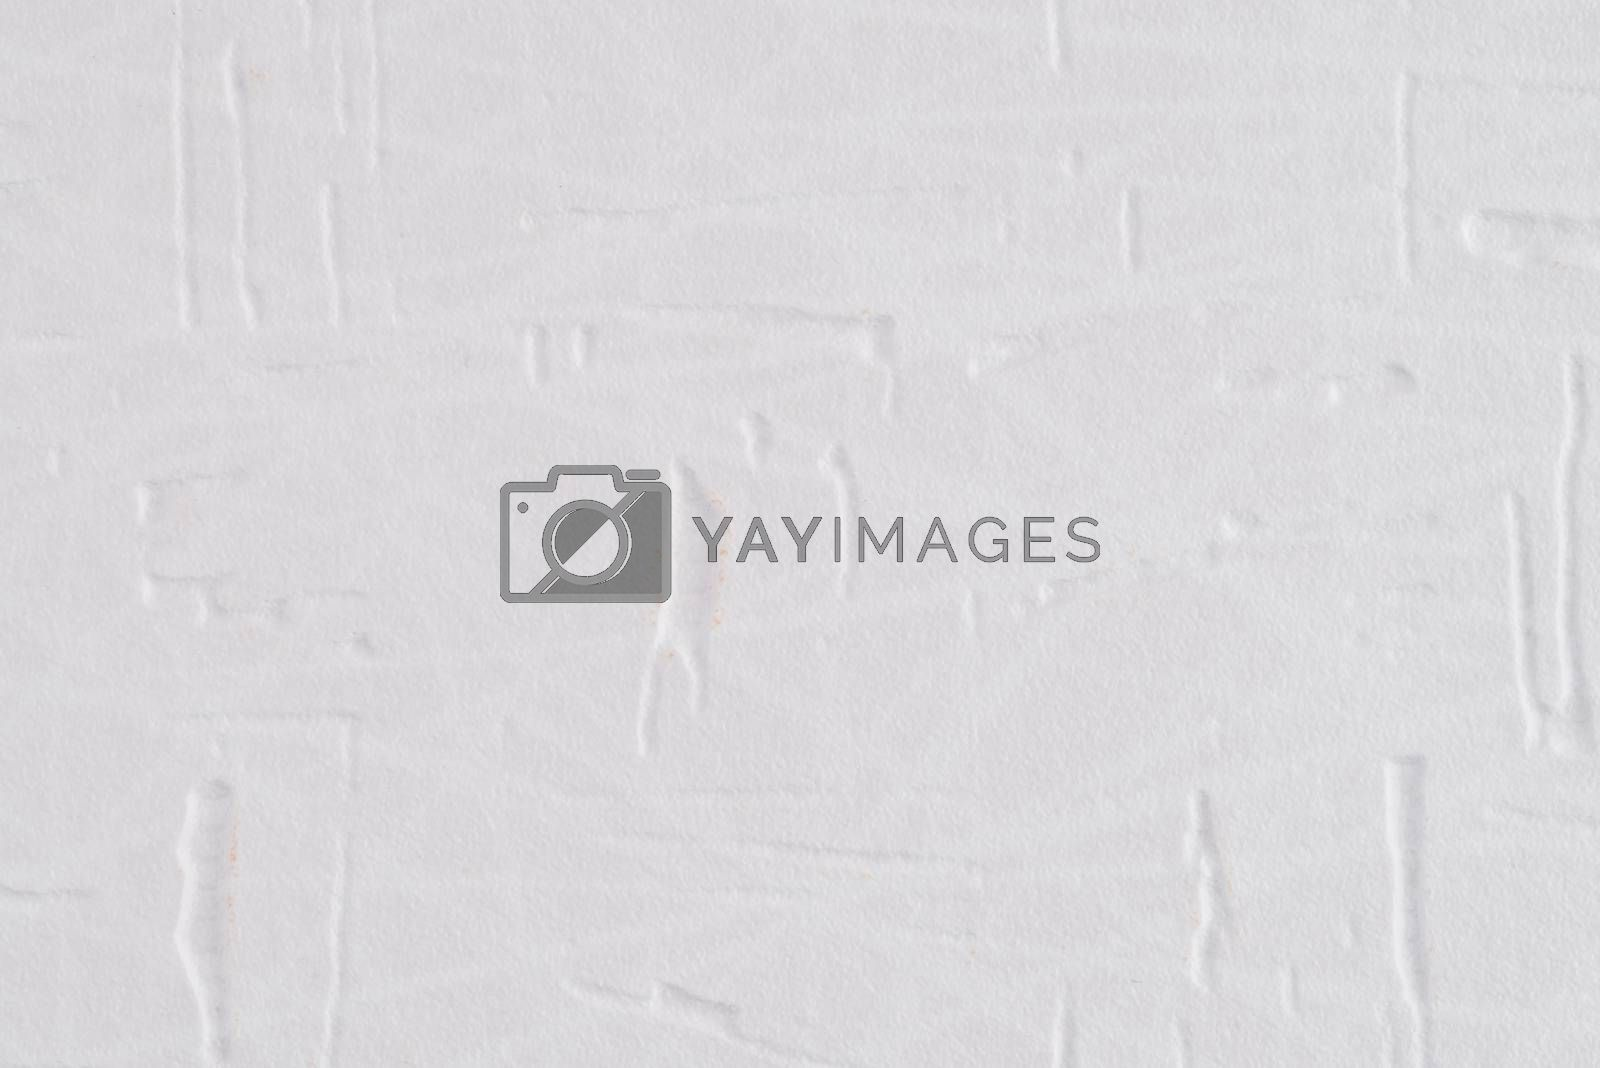 Royalty free image of White vinyl texture by homydesign